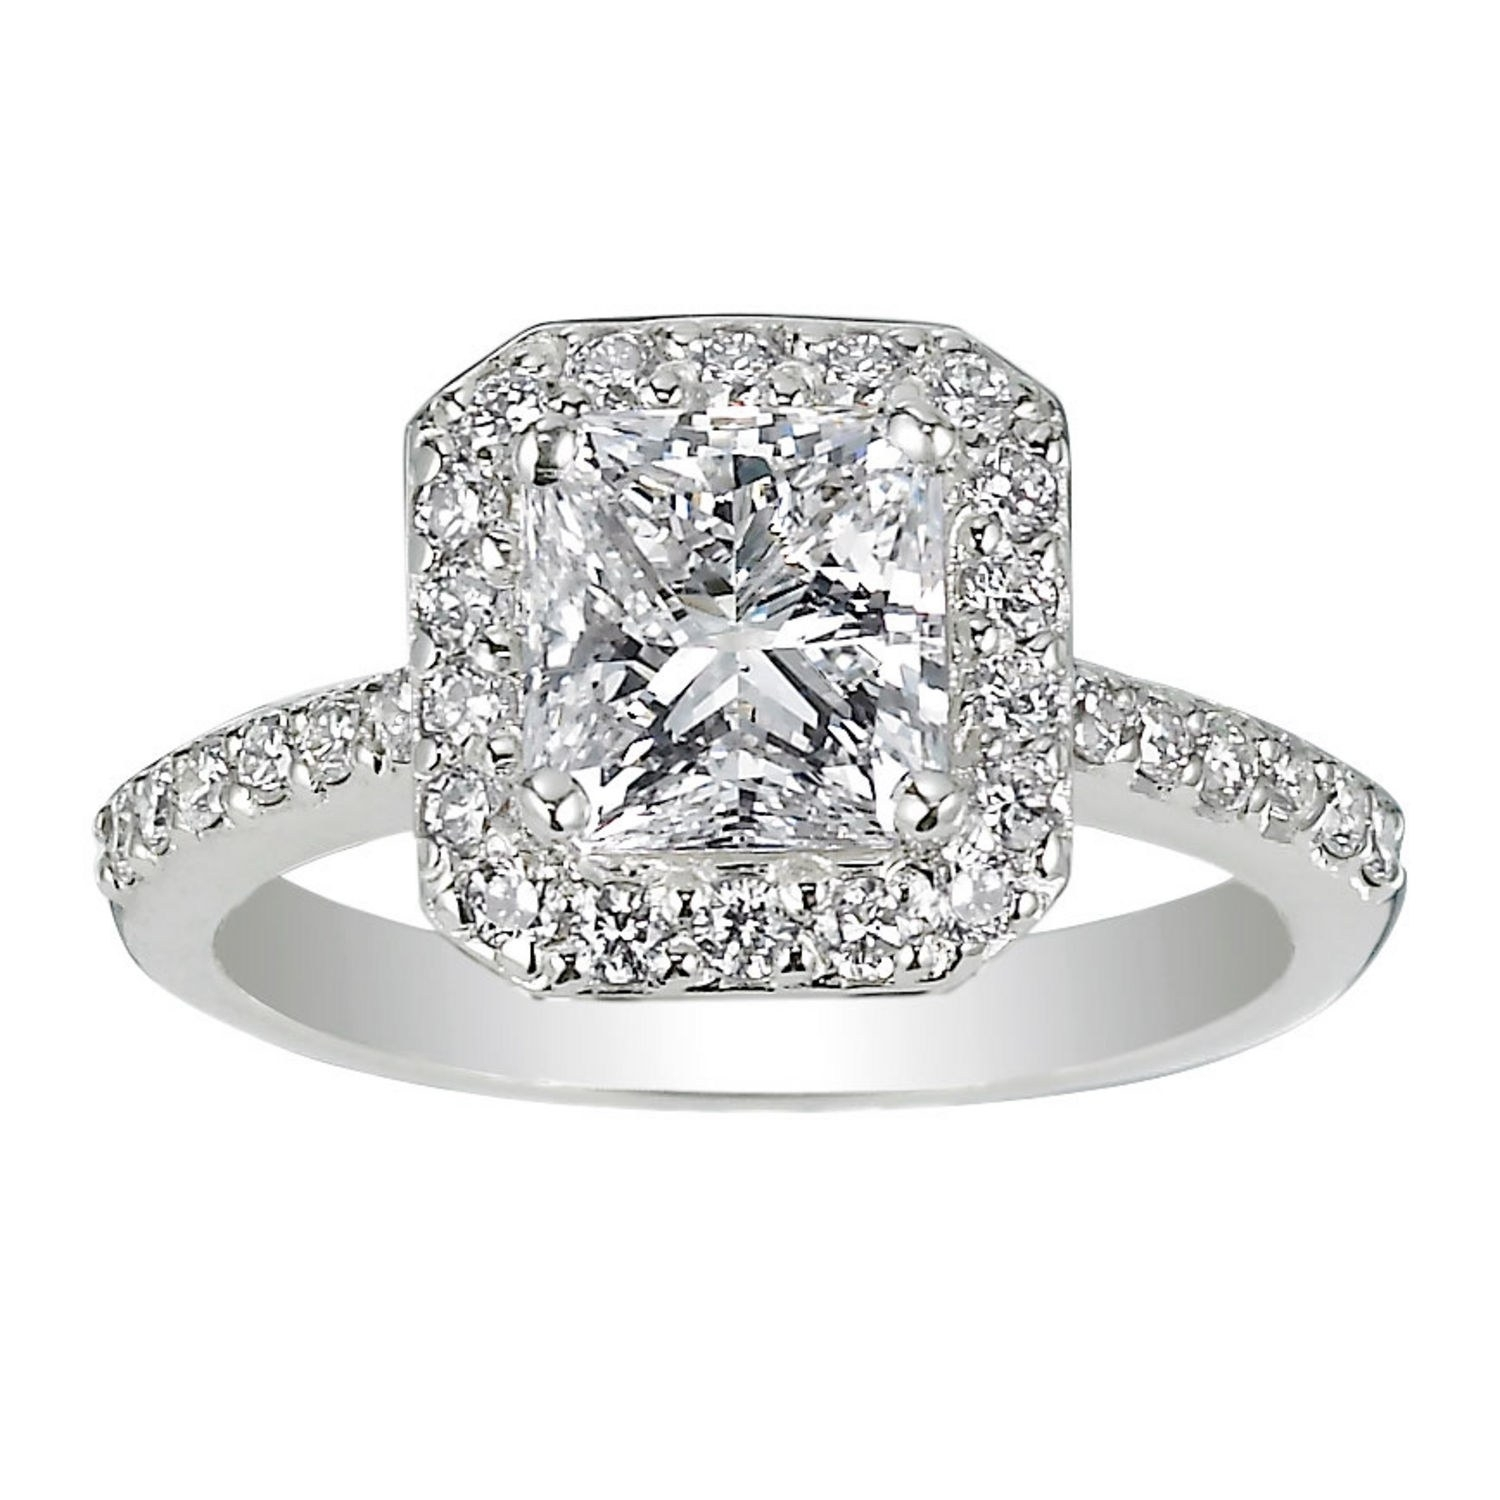 62 Diamond Engagement Rings Under $5,000 | Glamour Intended For Most Recent Diamond Frame Vintage Style Engagement Rings (View 3 of 15)